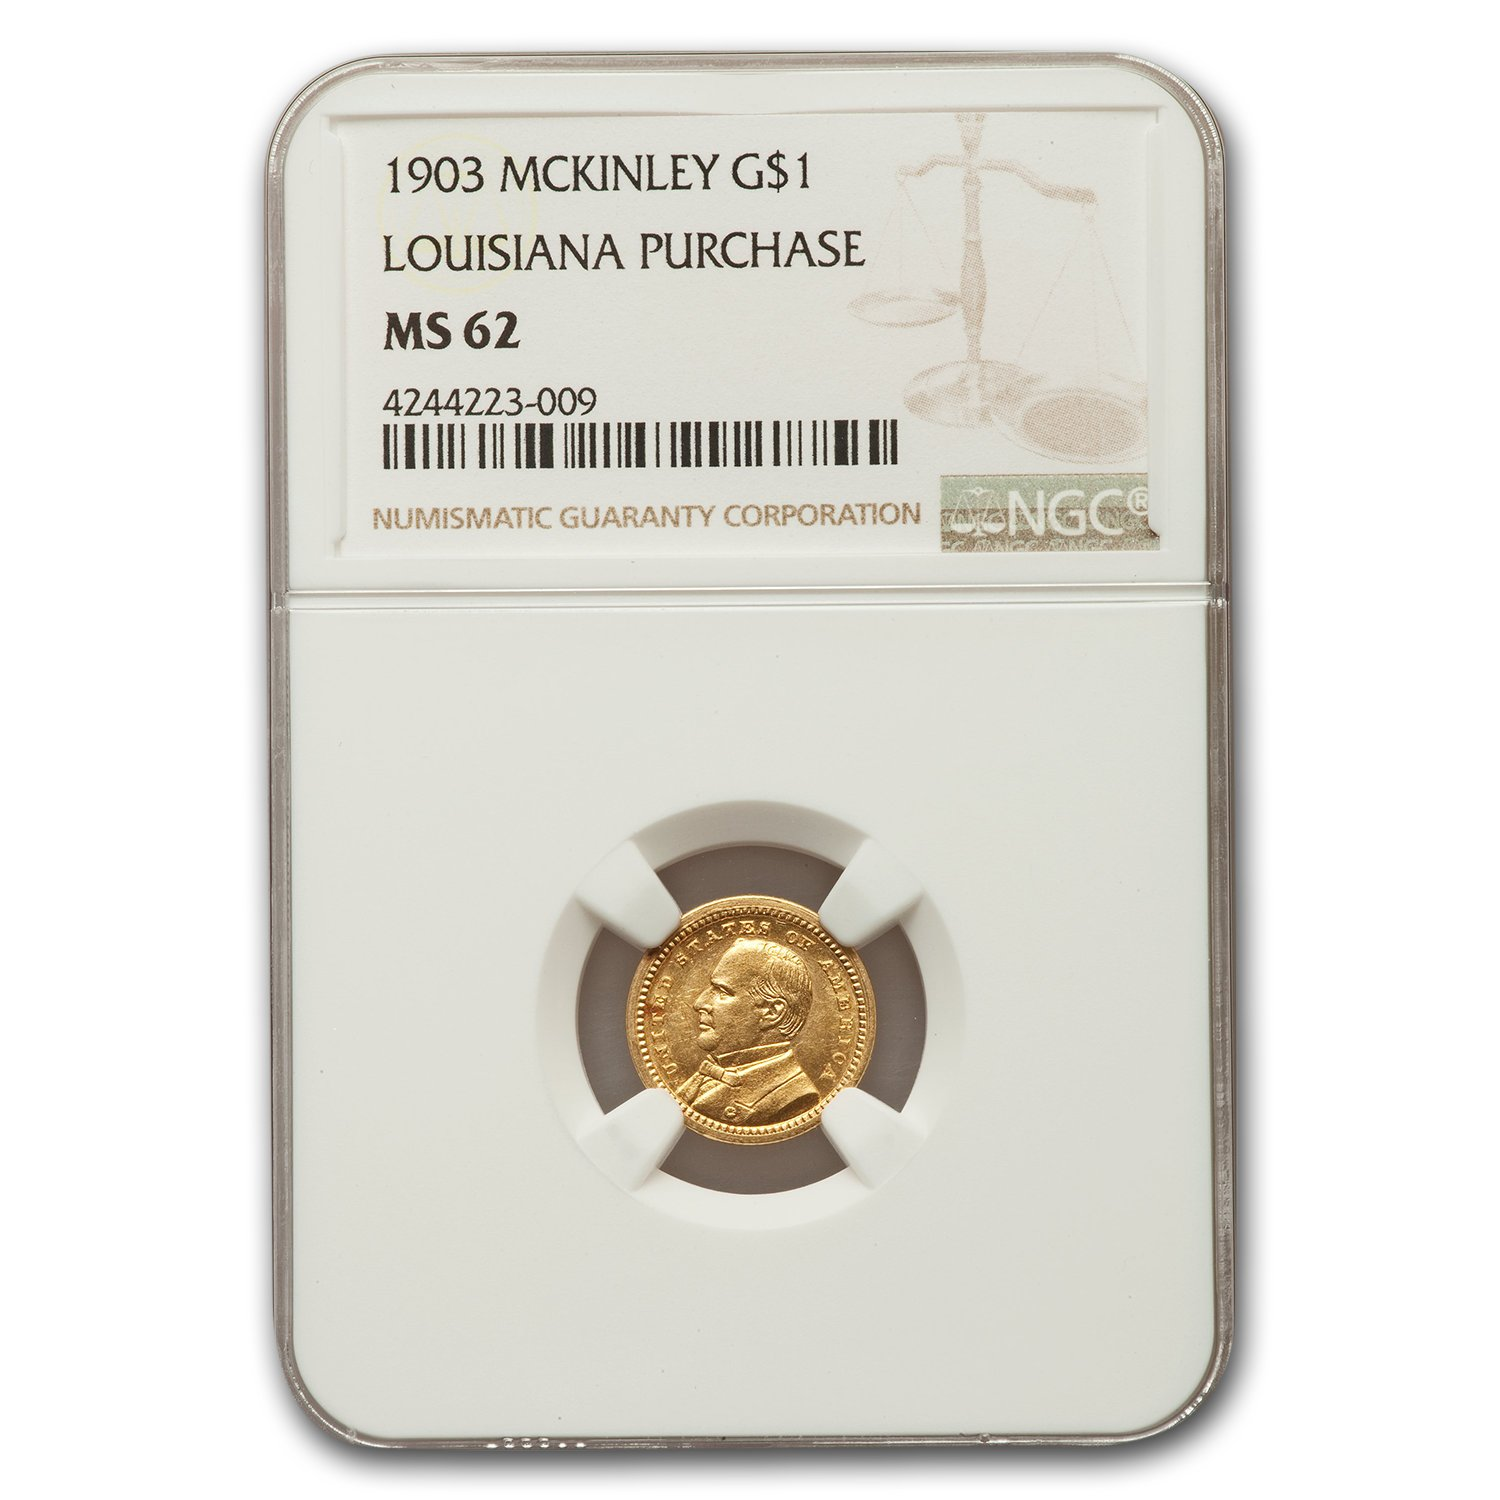 1903 $1.00 Gold Louisiana Purchase - McKinley MS-62 NGC